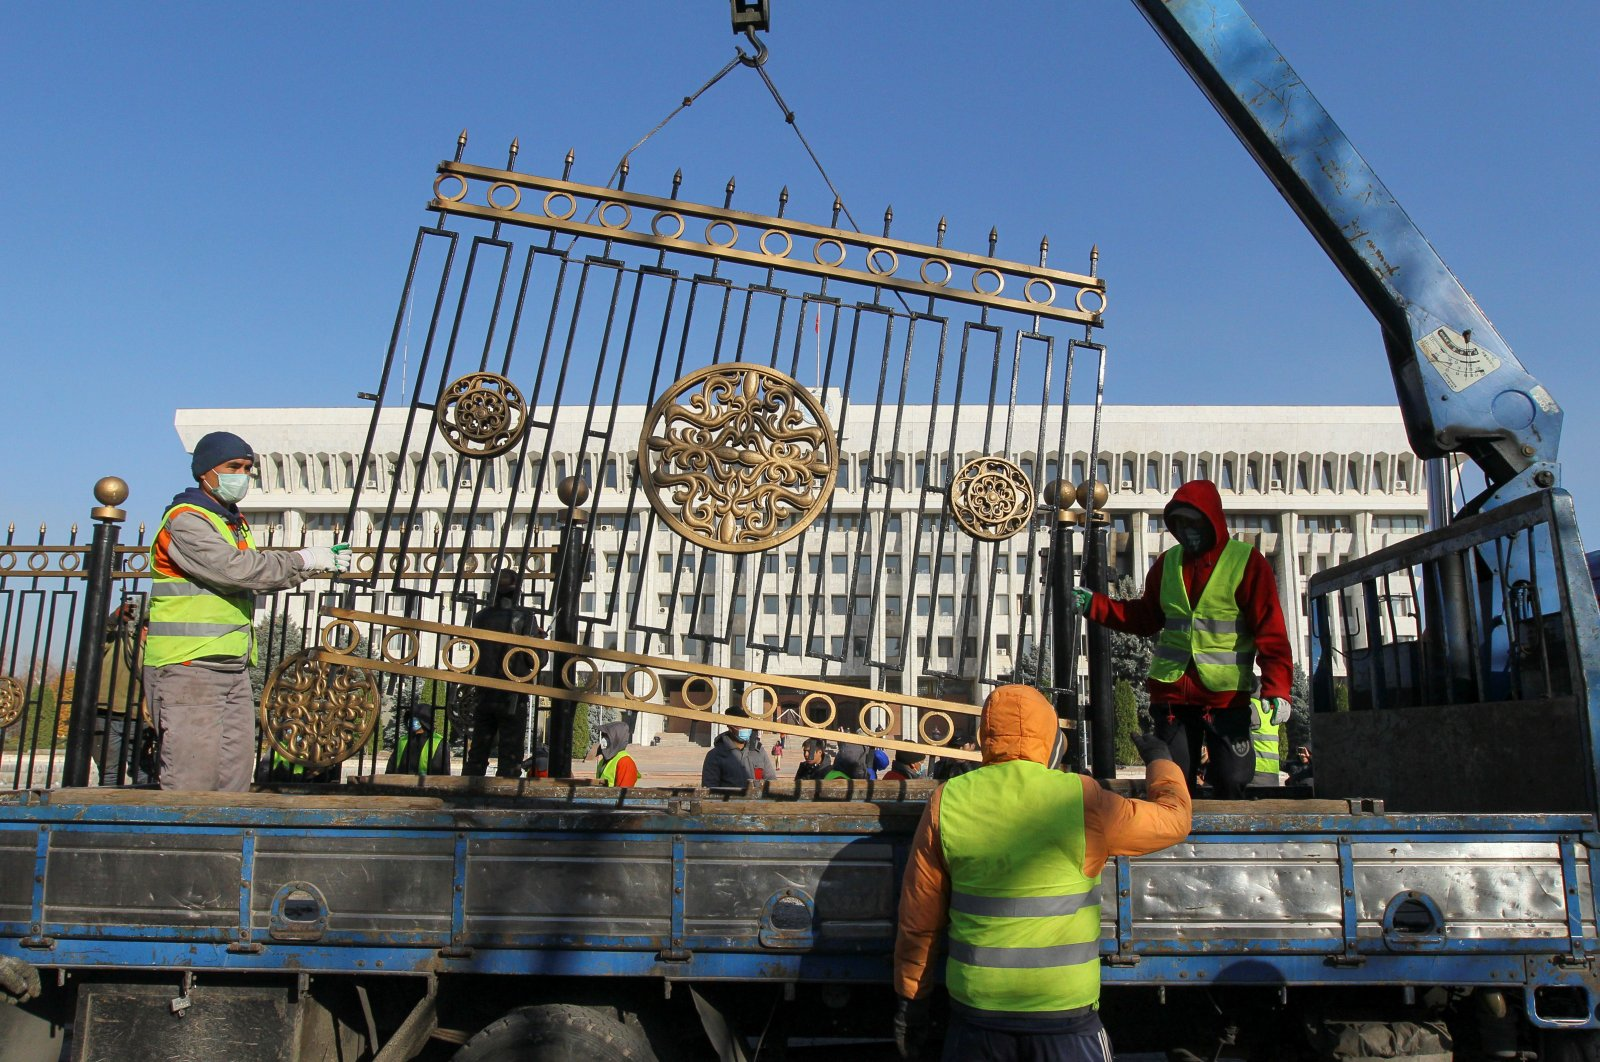 Workers remove a fence around the house of parliament, Bishkek, Kyrgyzstan, Nov. 6, 2020. (REUTERS Photo)